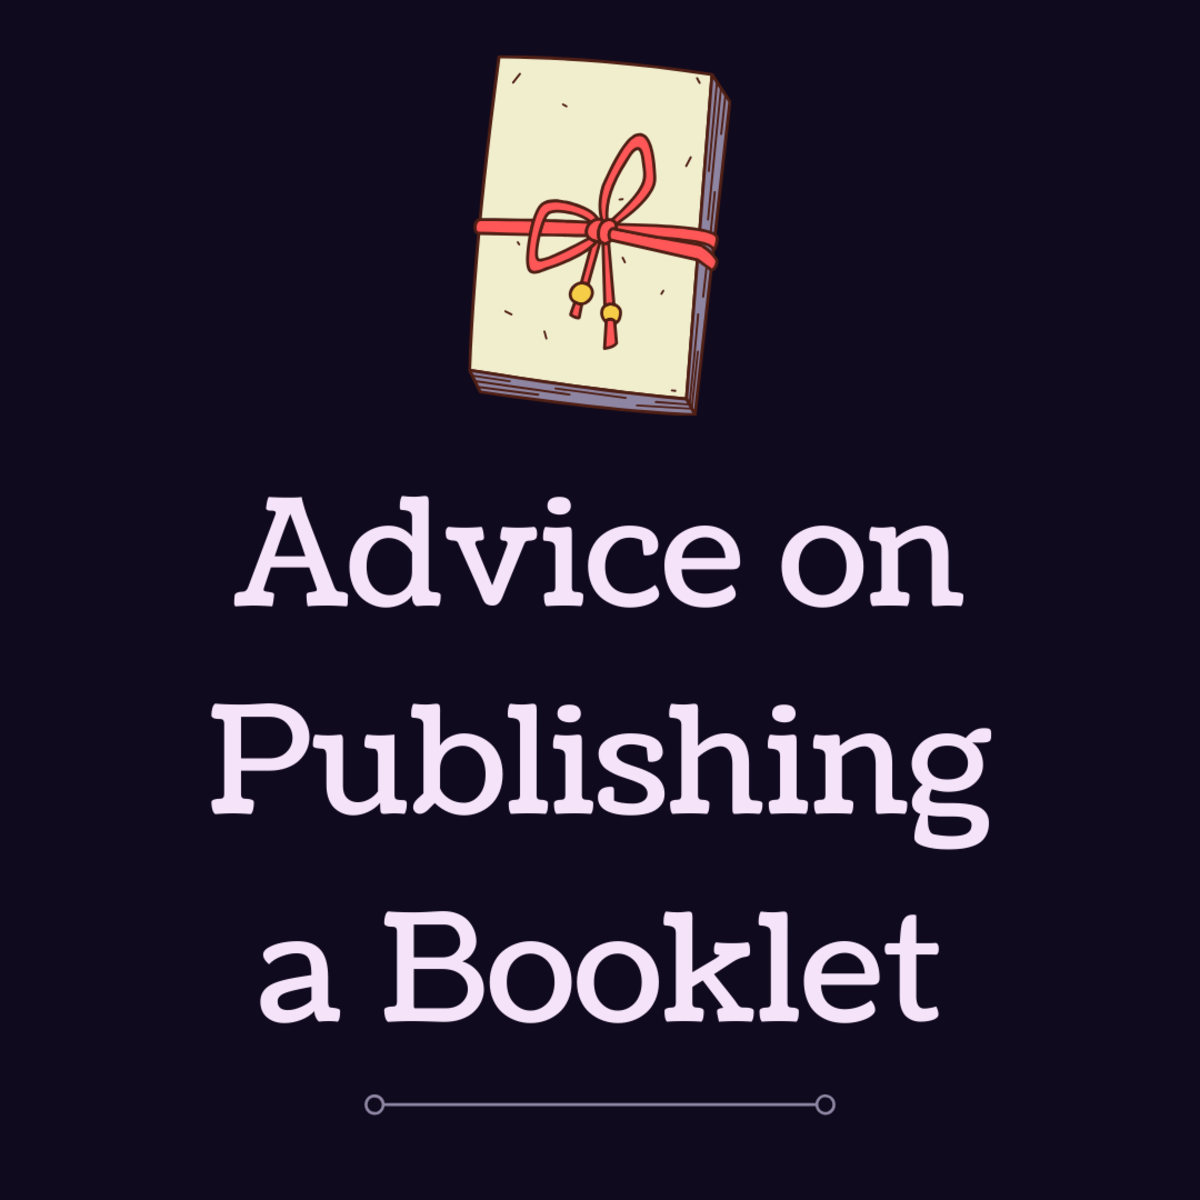 Find some advice on publishing a booklet or small book—and saving money each step of the way.